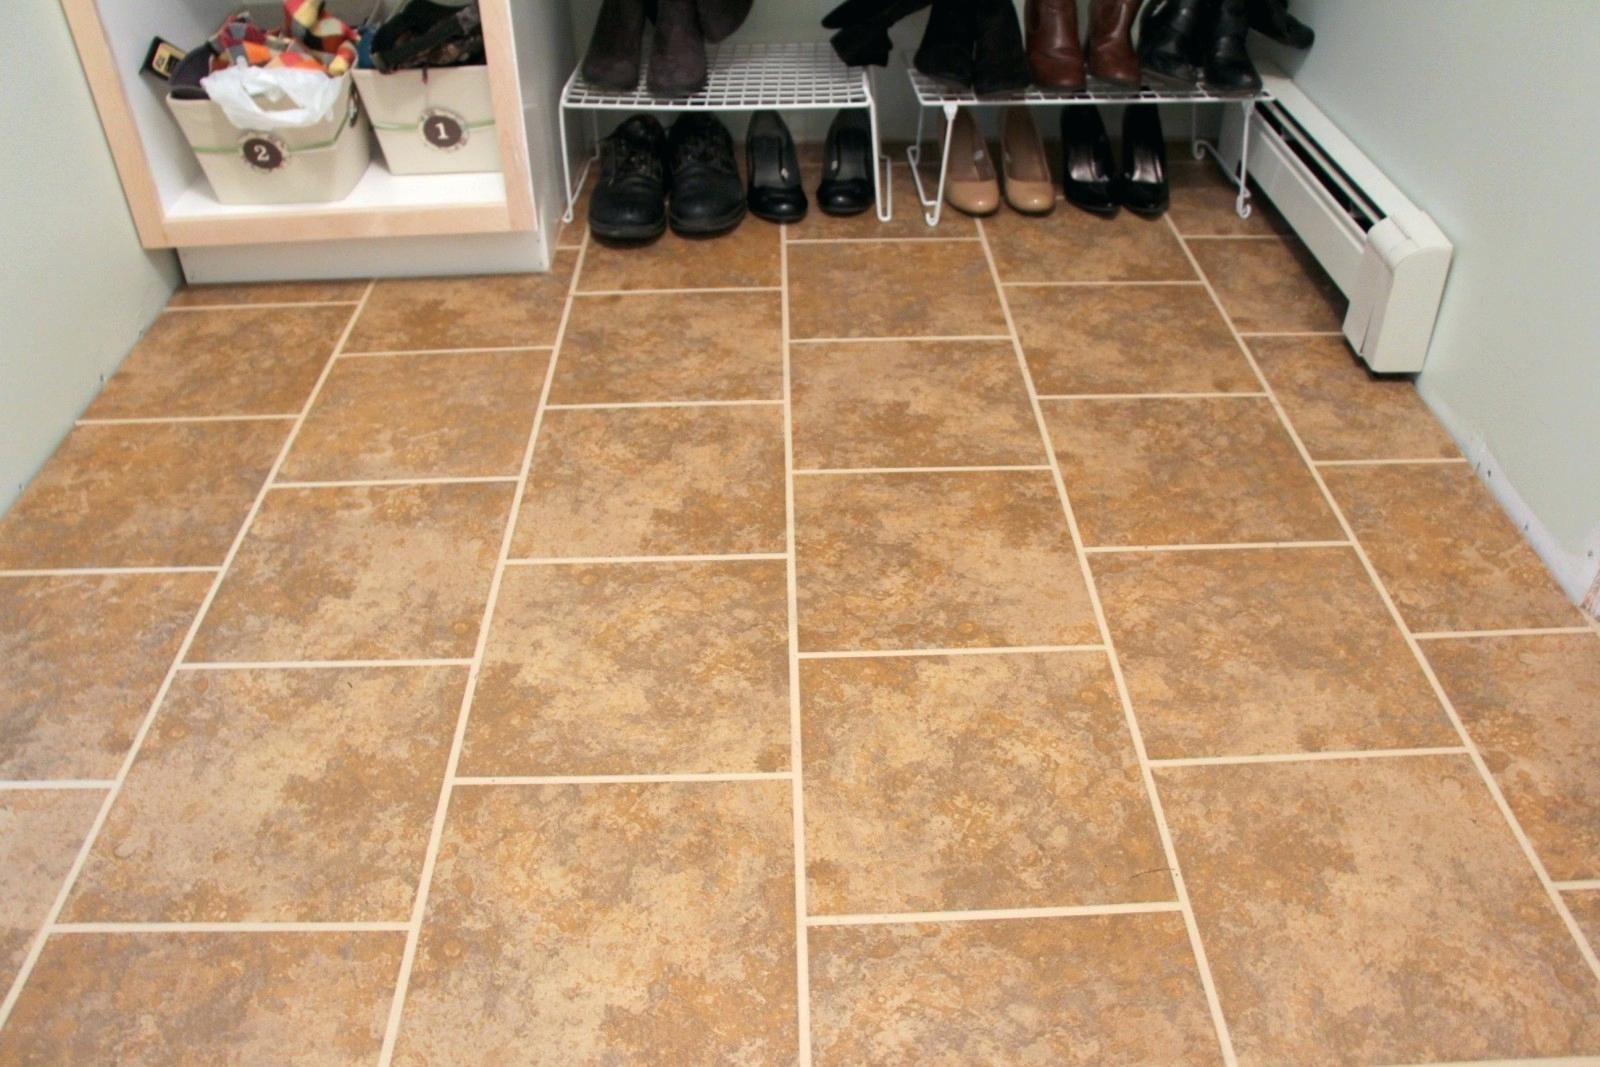 costco hardwood flooring reviews of garage tile floor flooring reviews tiles home depot canada costco intended for garage tile floor flooring reviews tiles home depot canada costco